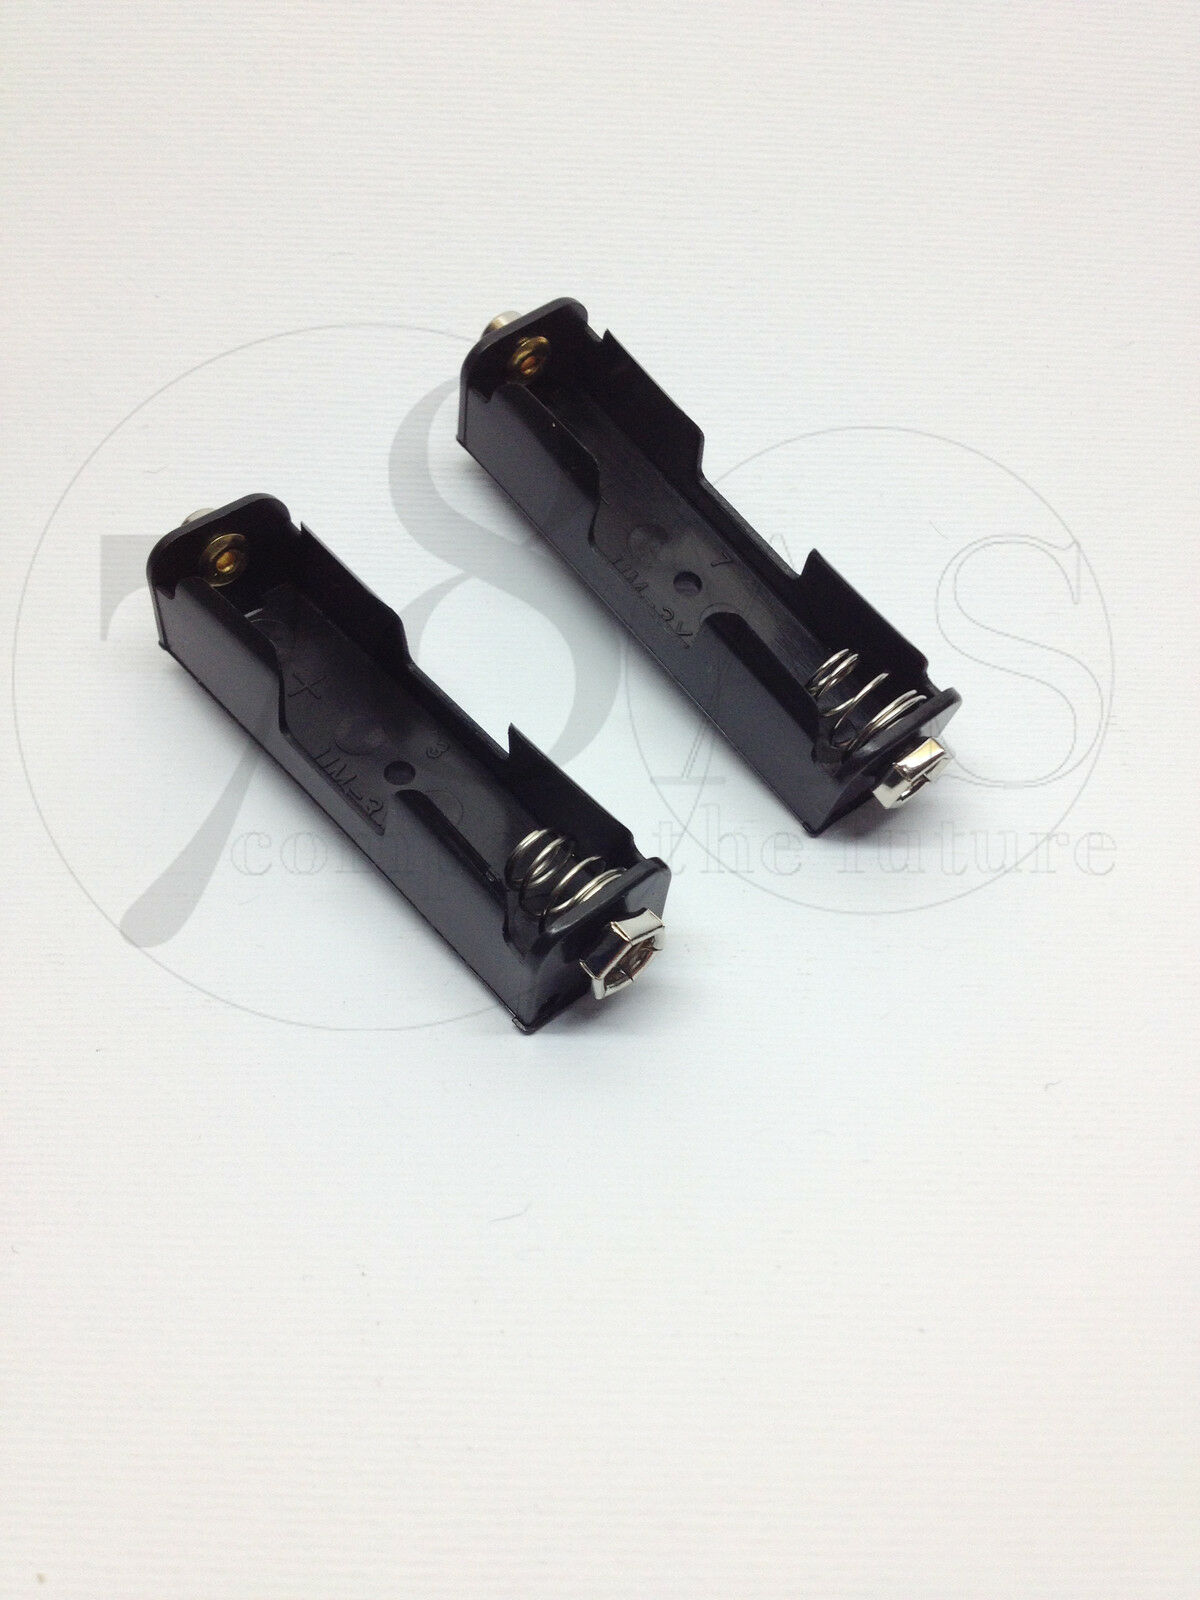 2 For Container Power Battery 1 Place For Batteries Fleece Aa With Clip